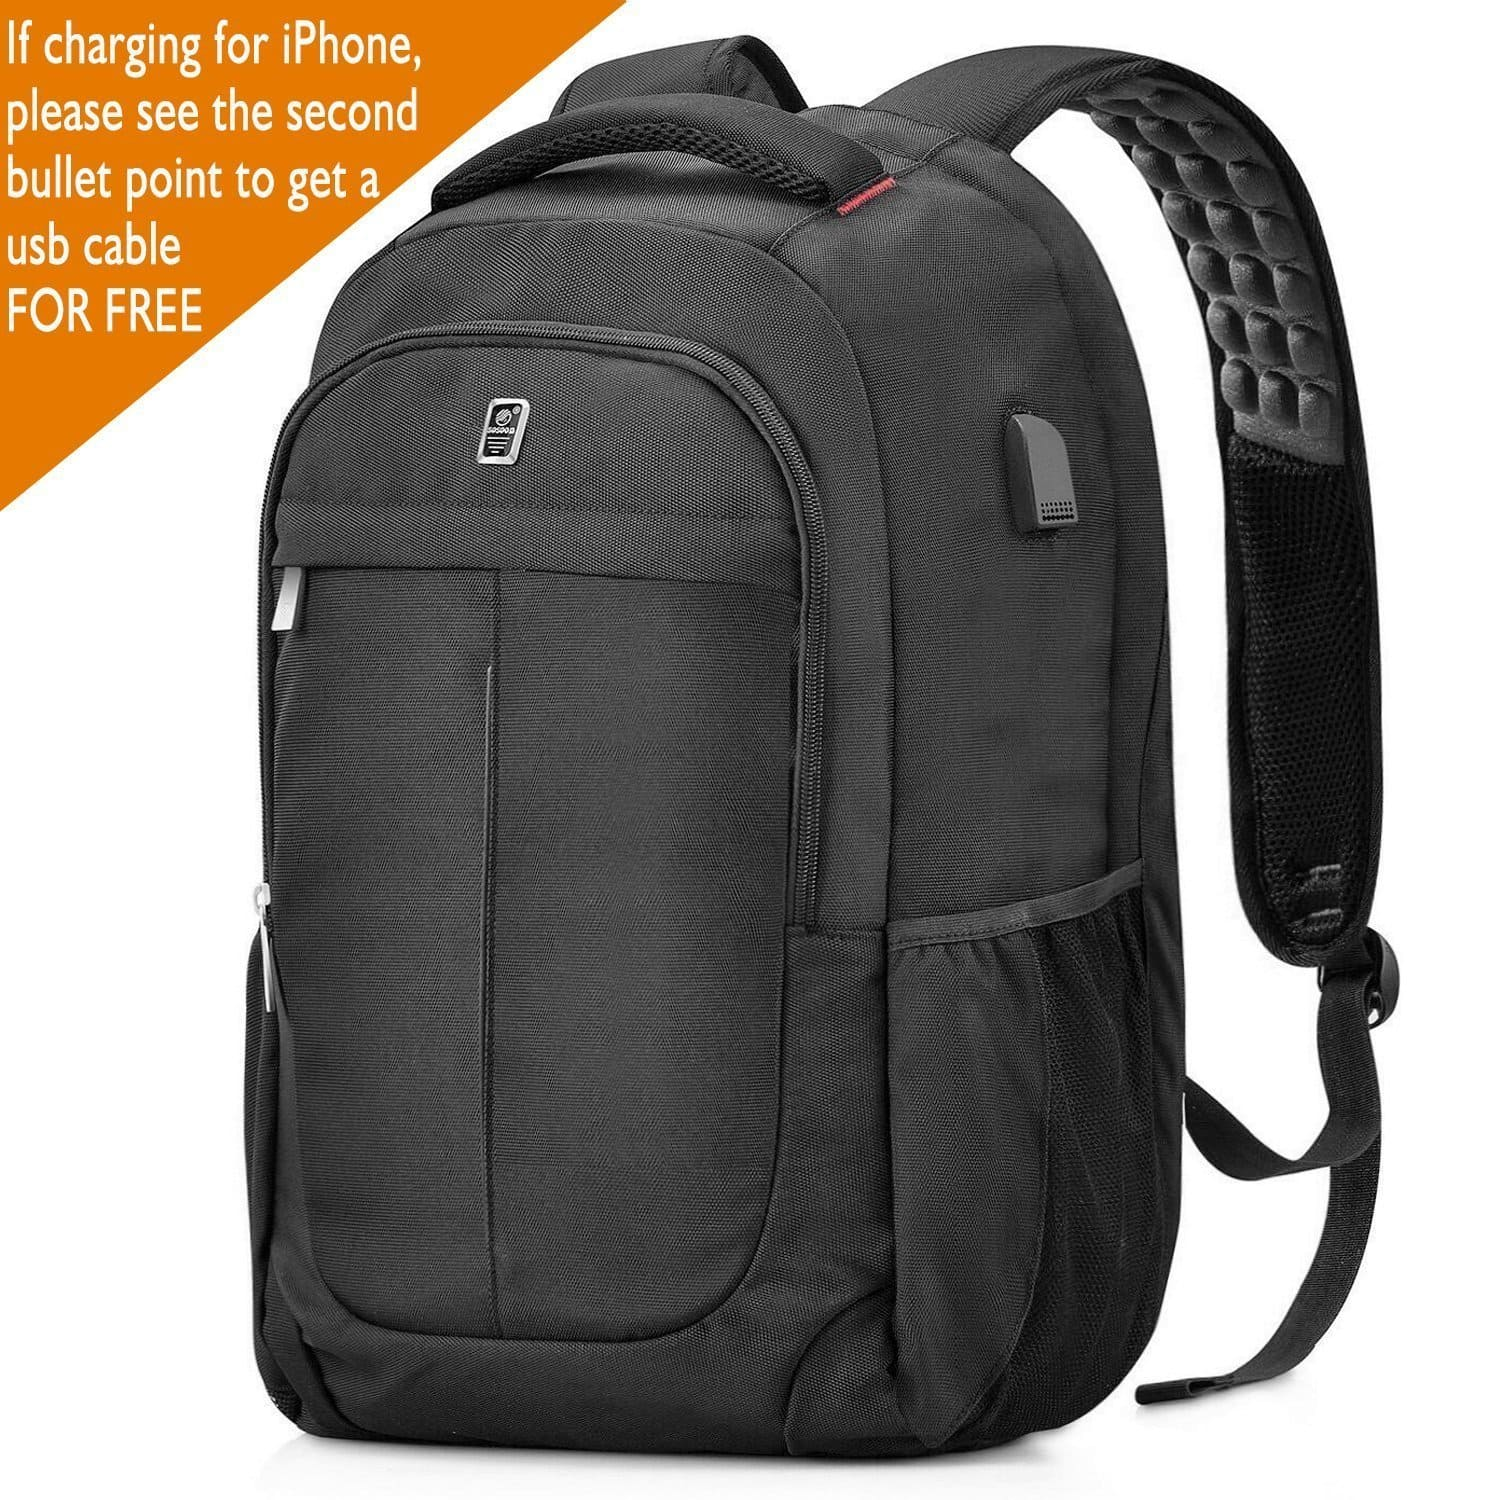 """Sosoon Black 15.6"""" Laptop Backpack with USB Charging Port & FREE USB Charging Cable (Anti-Theft, Water Resistant Polyester) $12.23 after 30% off at Amazon.com"""